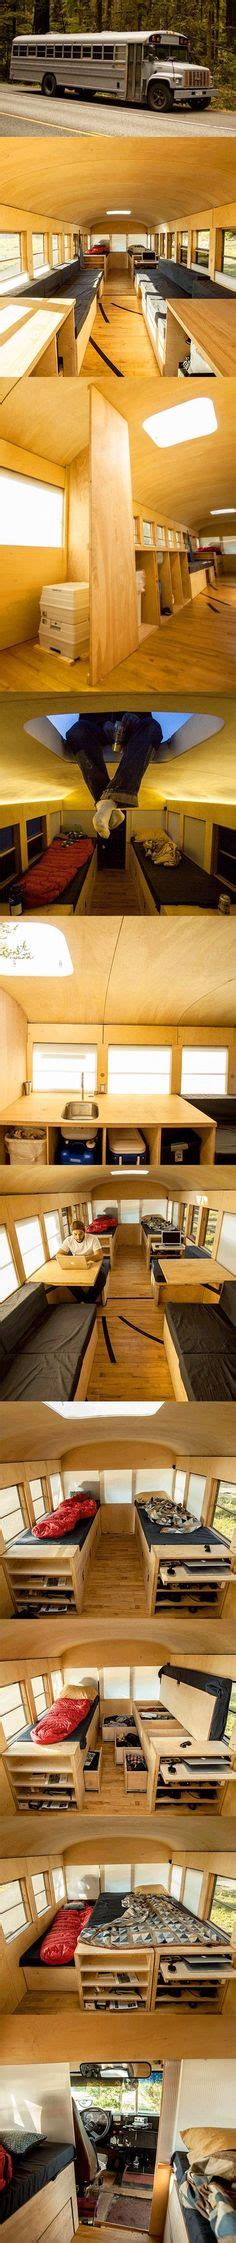 School Converted Into Small Home By Architecture Student by Cing Tents For Truck Box Tent In Buy And Sell